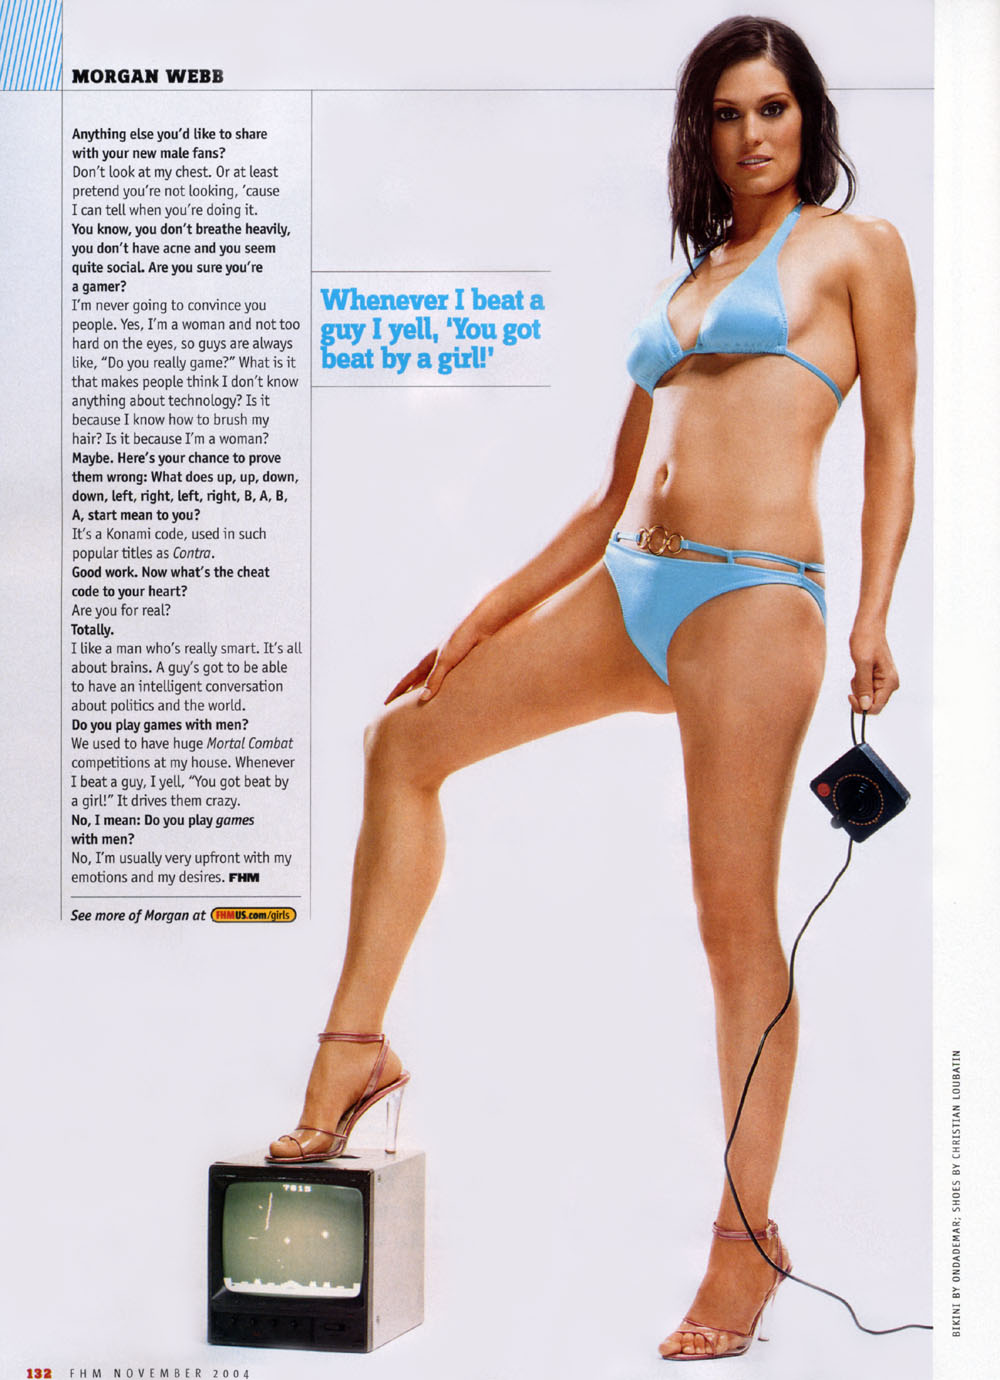 Morgan Webb Images Morgan S Fhm Pages Hd Wallpaper And Background Photos 621230